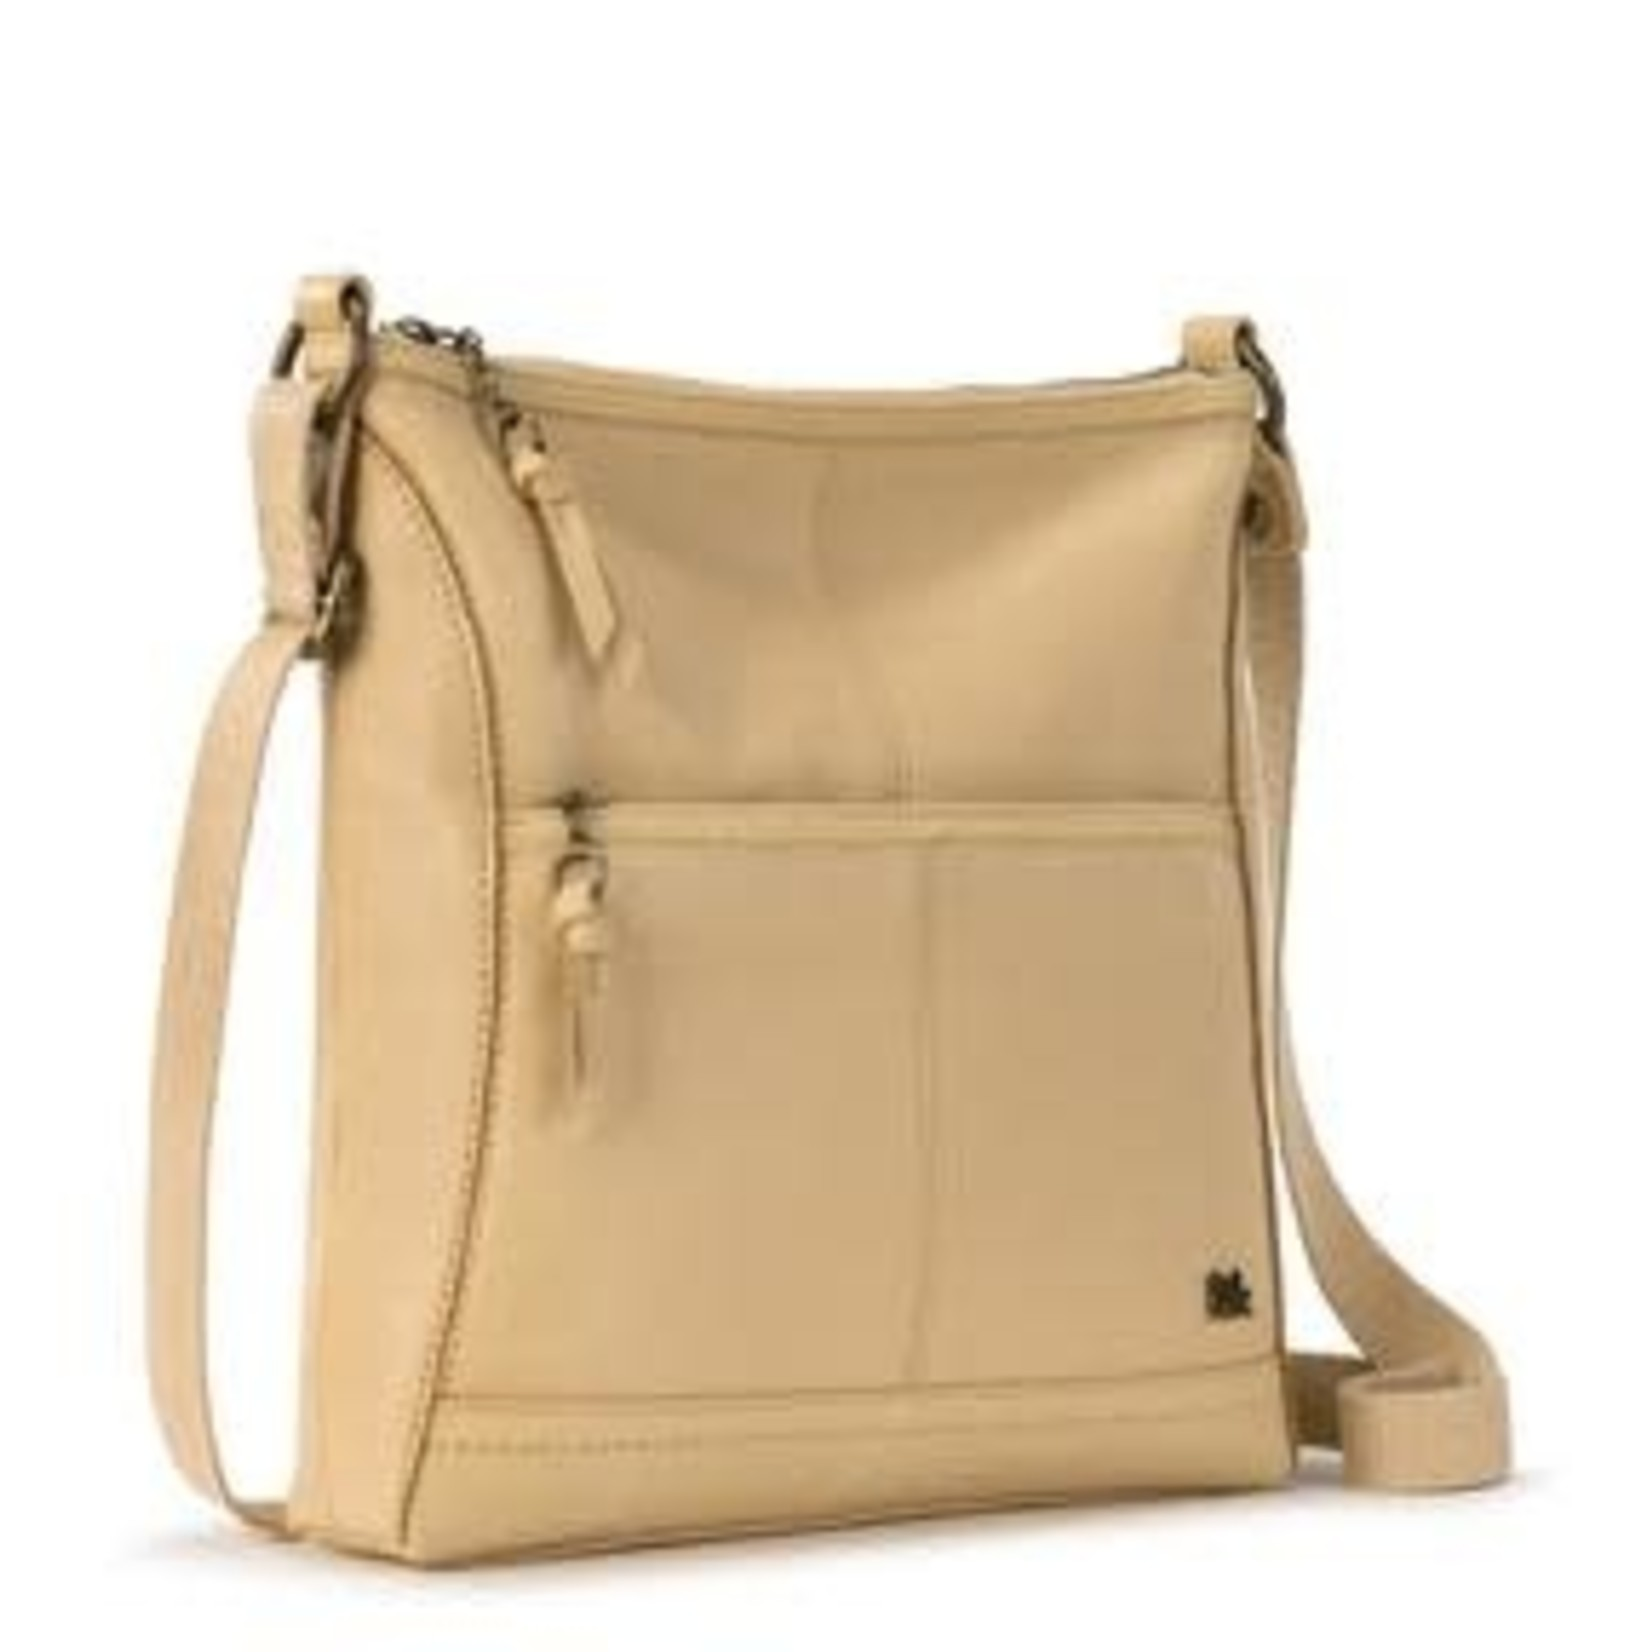 The Sak Iris Crossbody - Buttercup